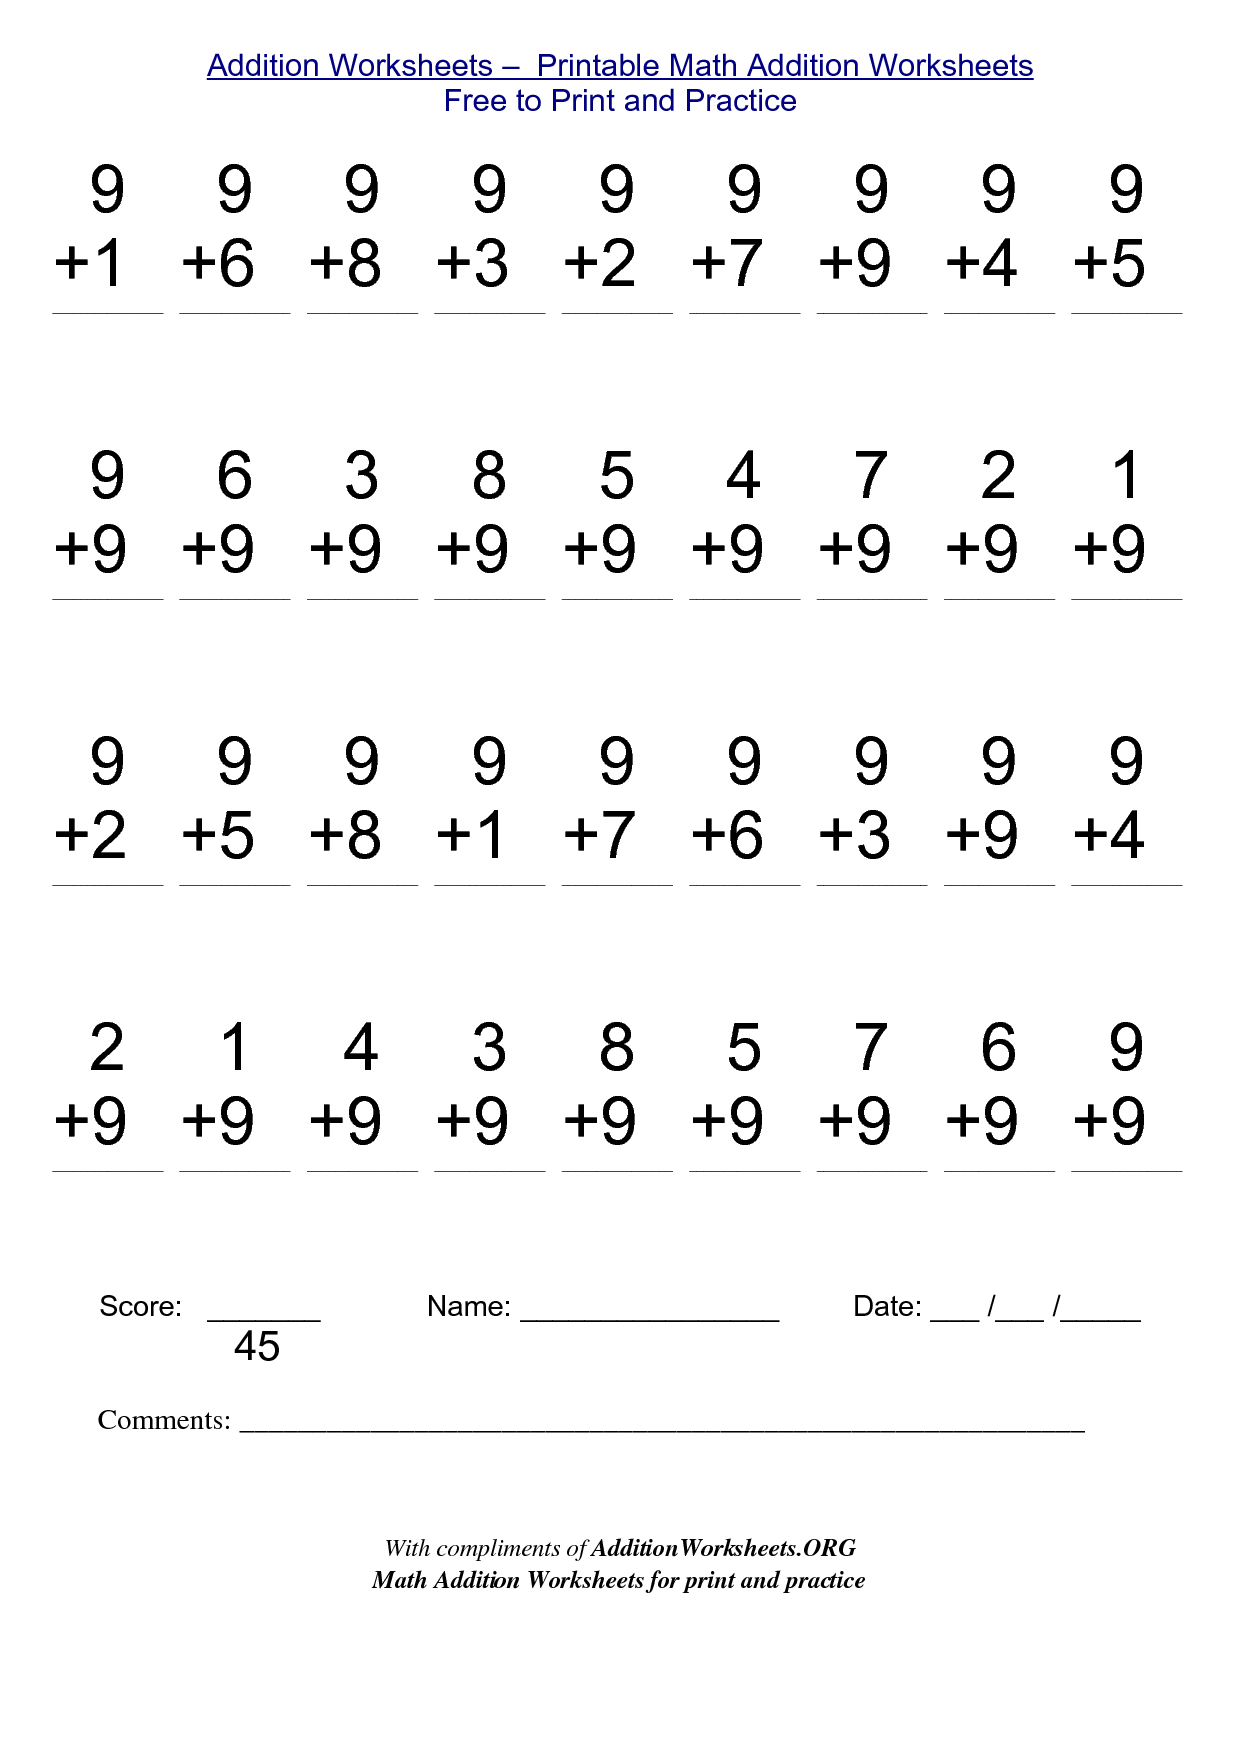 Printables Printable Math Worksheets 3rd Grade 1000 images about school worksheets on pinterest 3rd grade math simple addition and perimeter worksheets